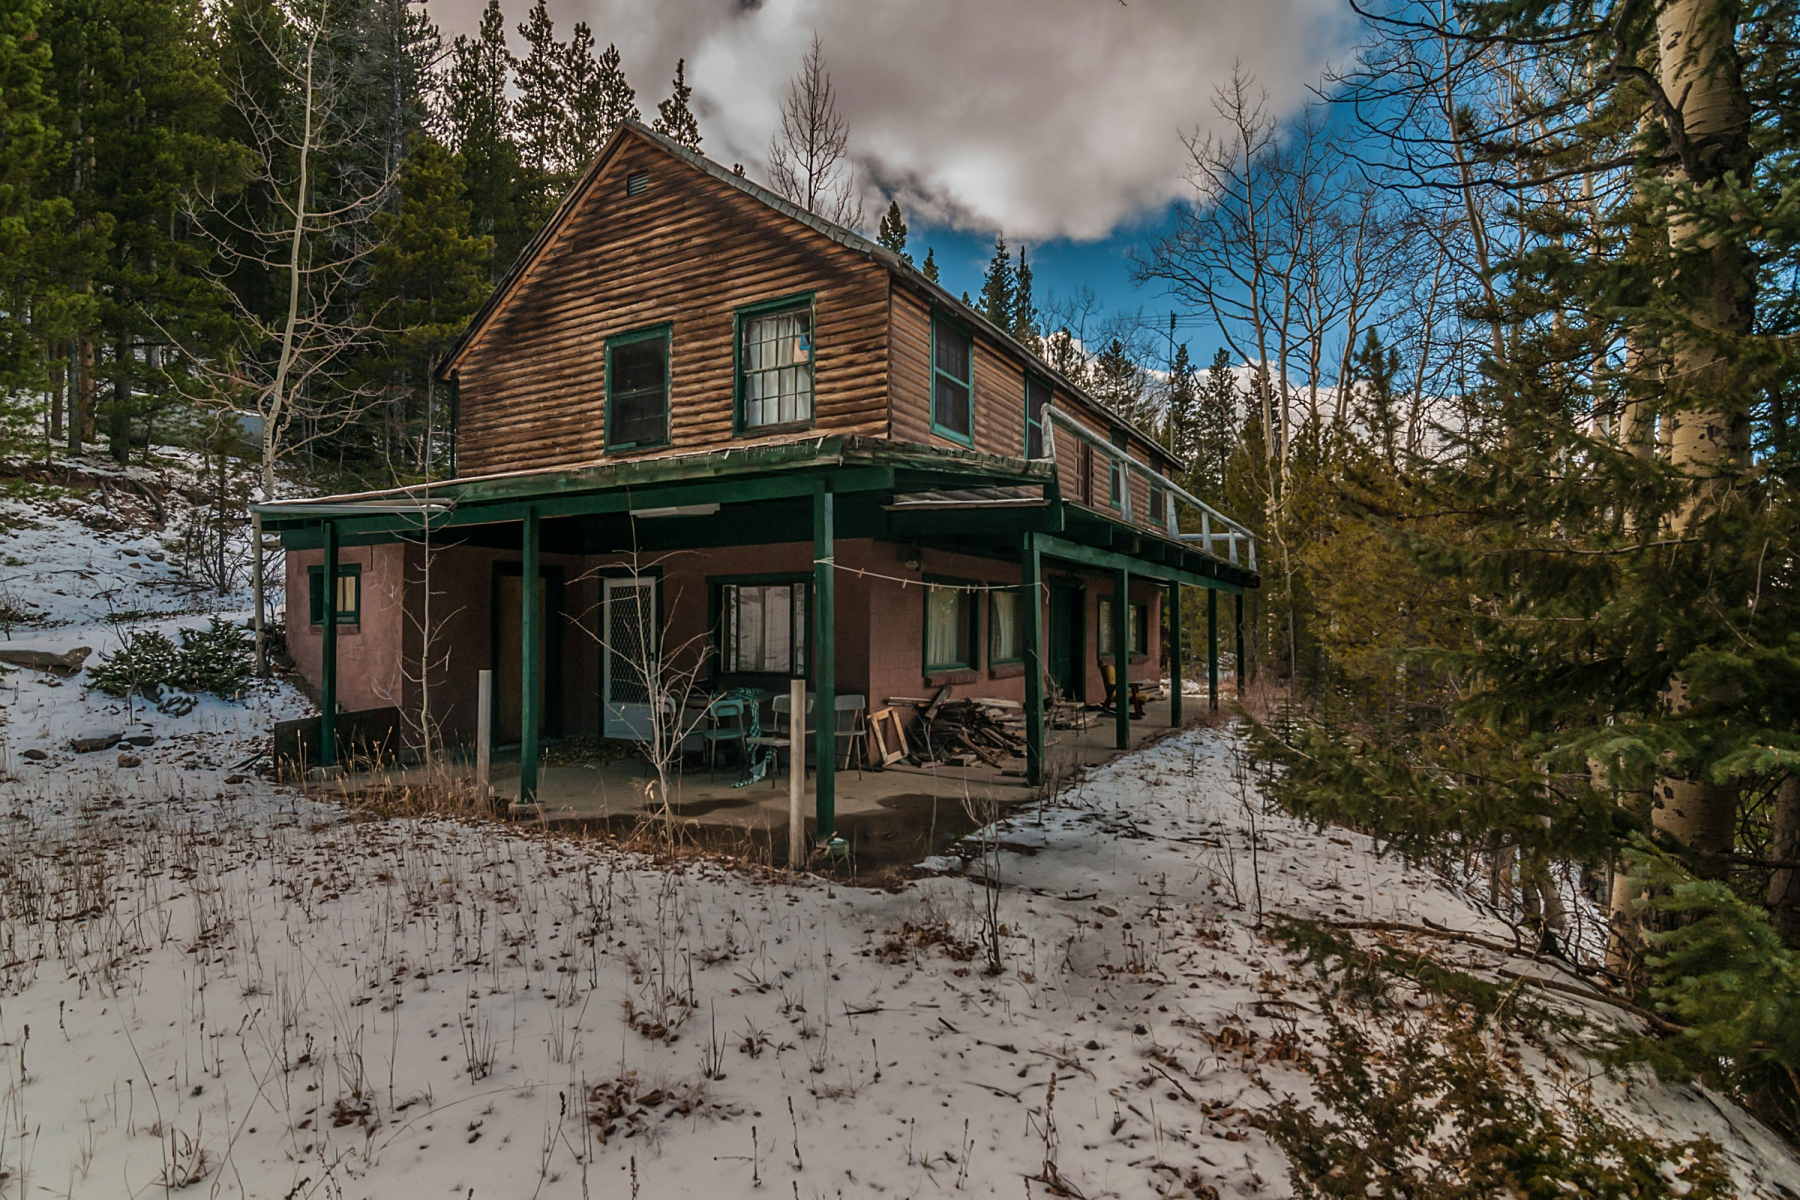 Property For Sale at Charming Vintage Cabin